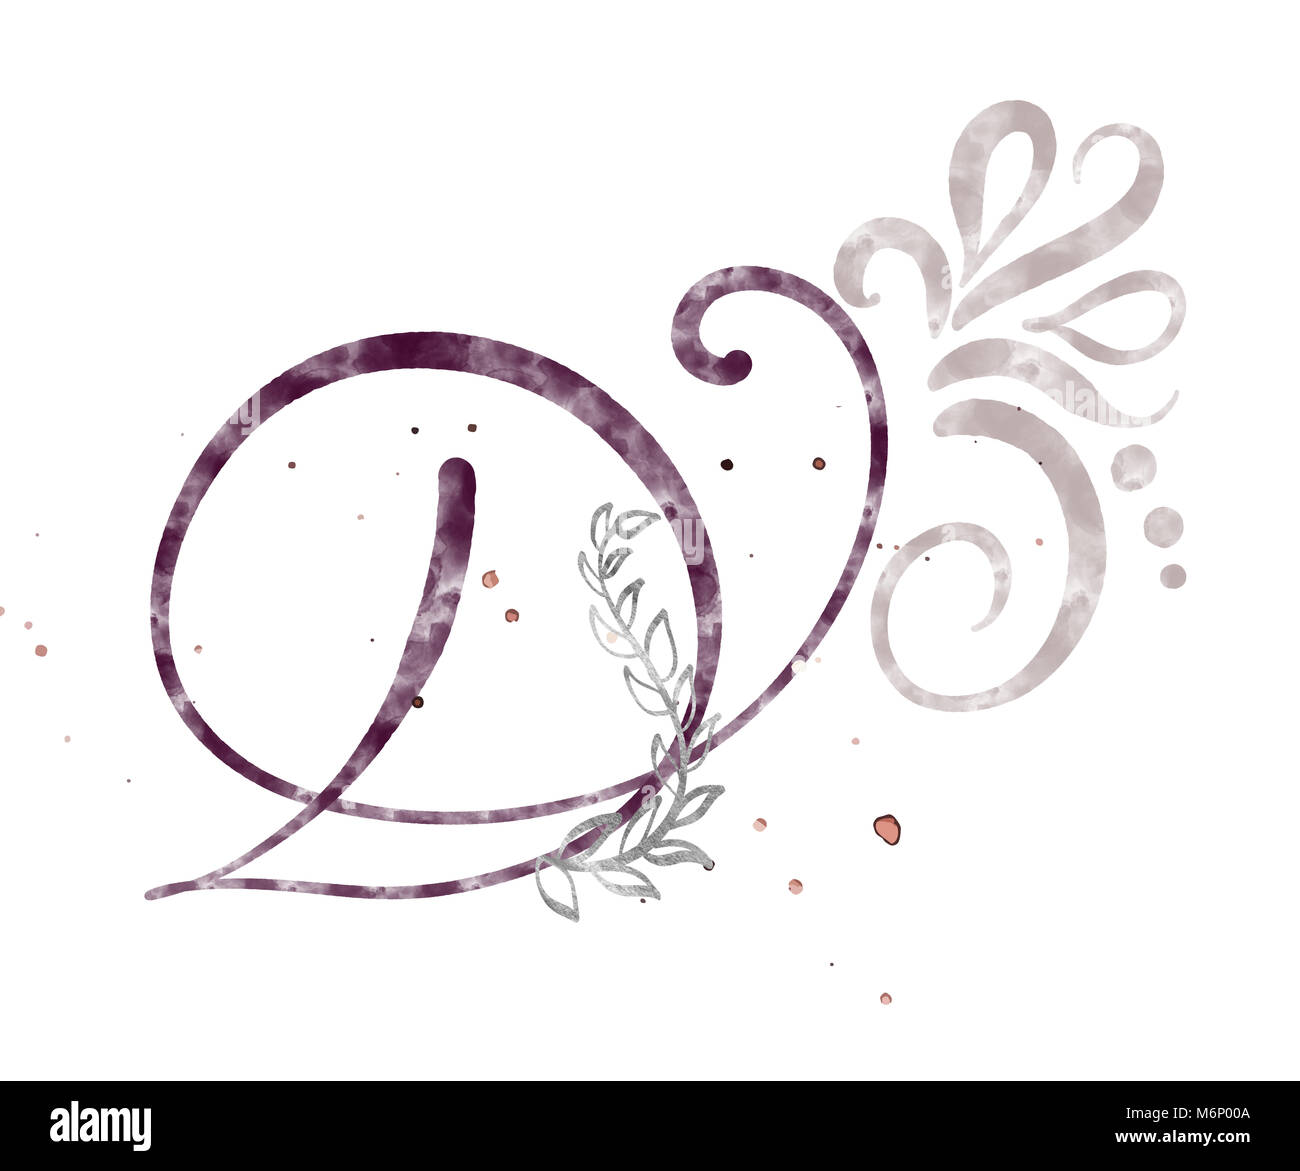 Letter D Cut Out Stock Images & Pictures - Alamy